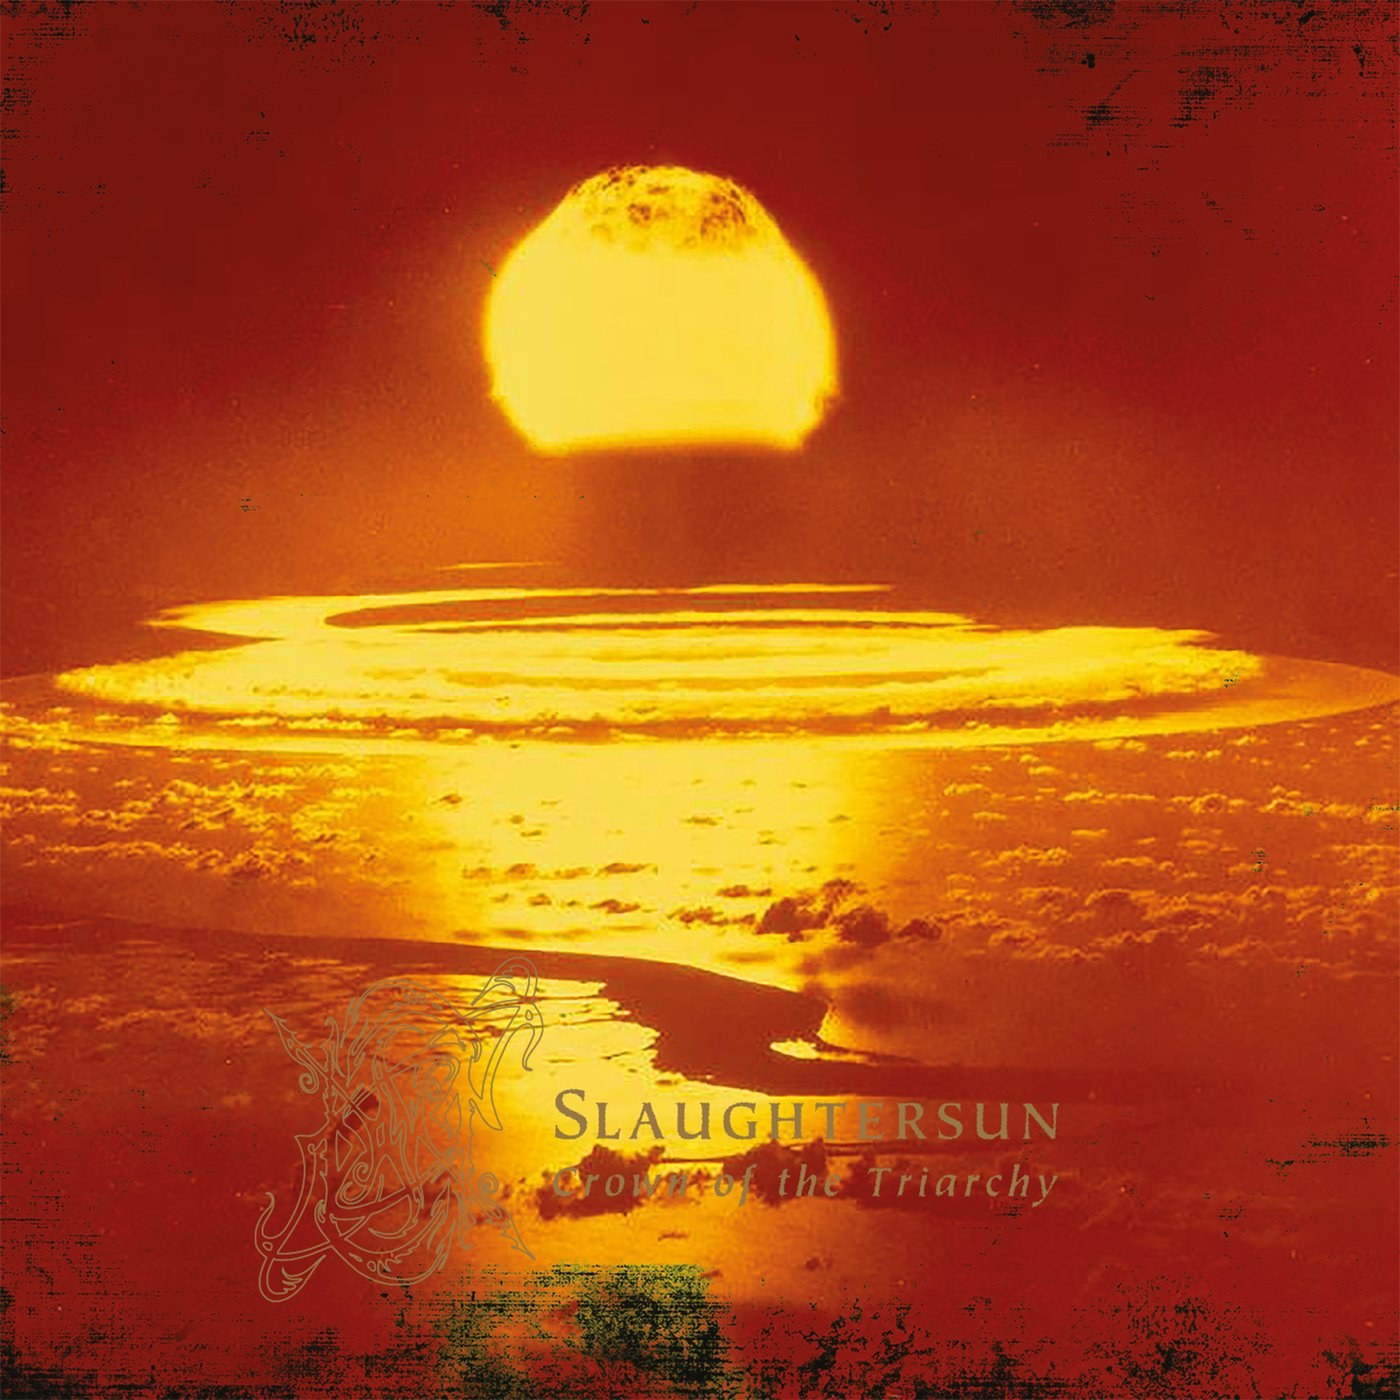 Review for Dawn - Slaughtersun (Crown of the Triarchy)